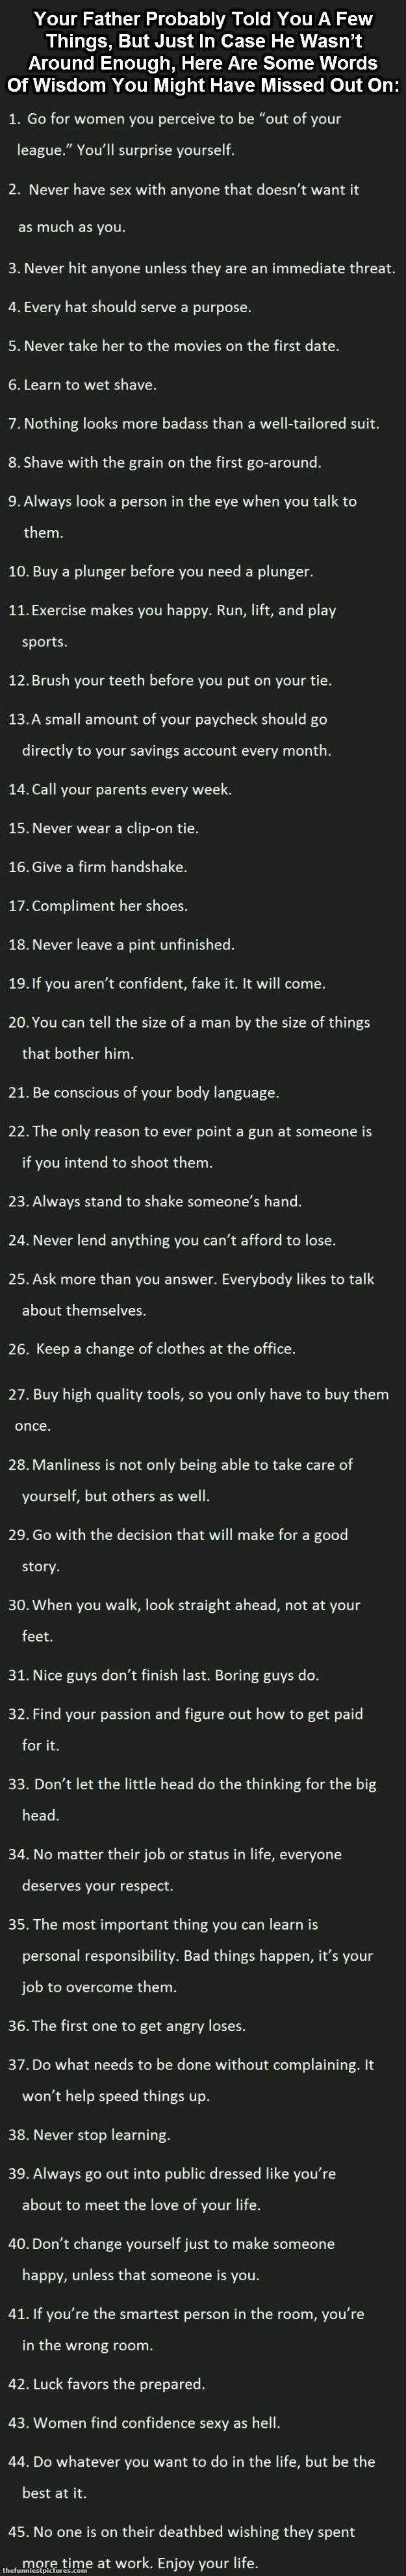 Life manual to live by | Funniest Pictures